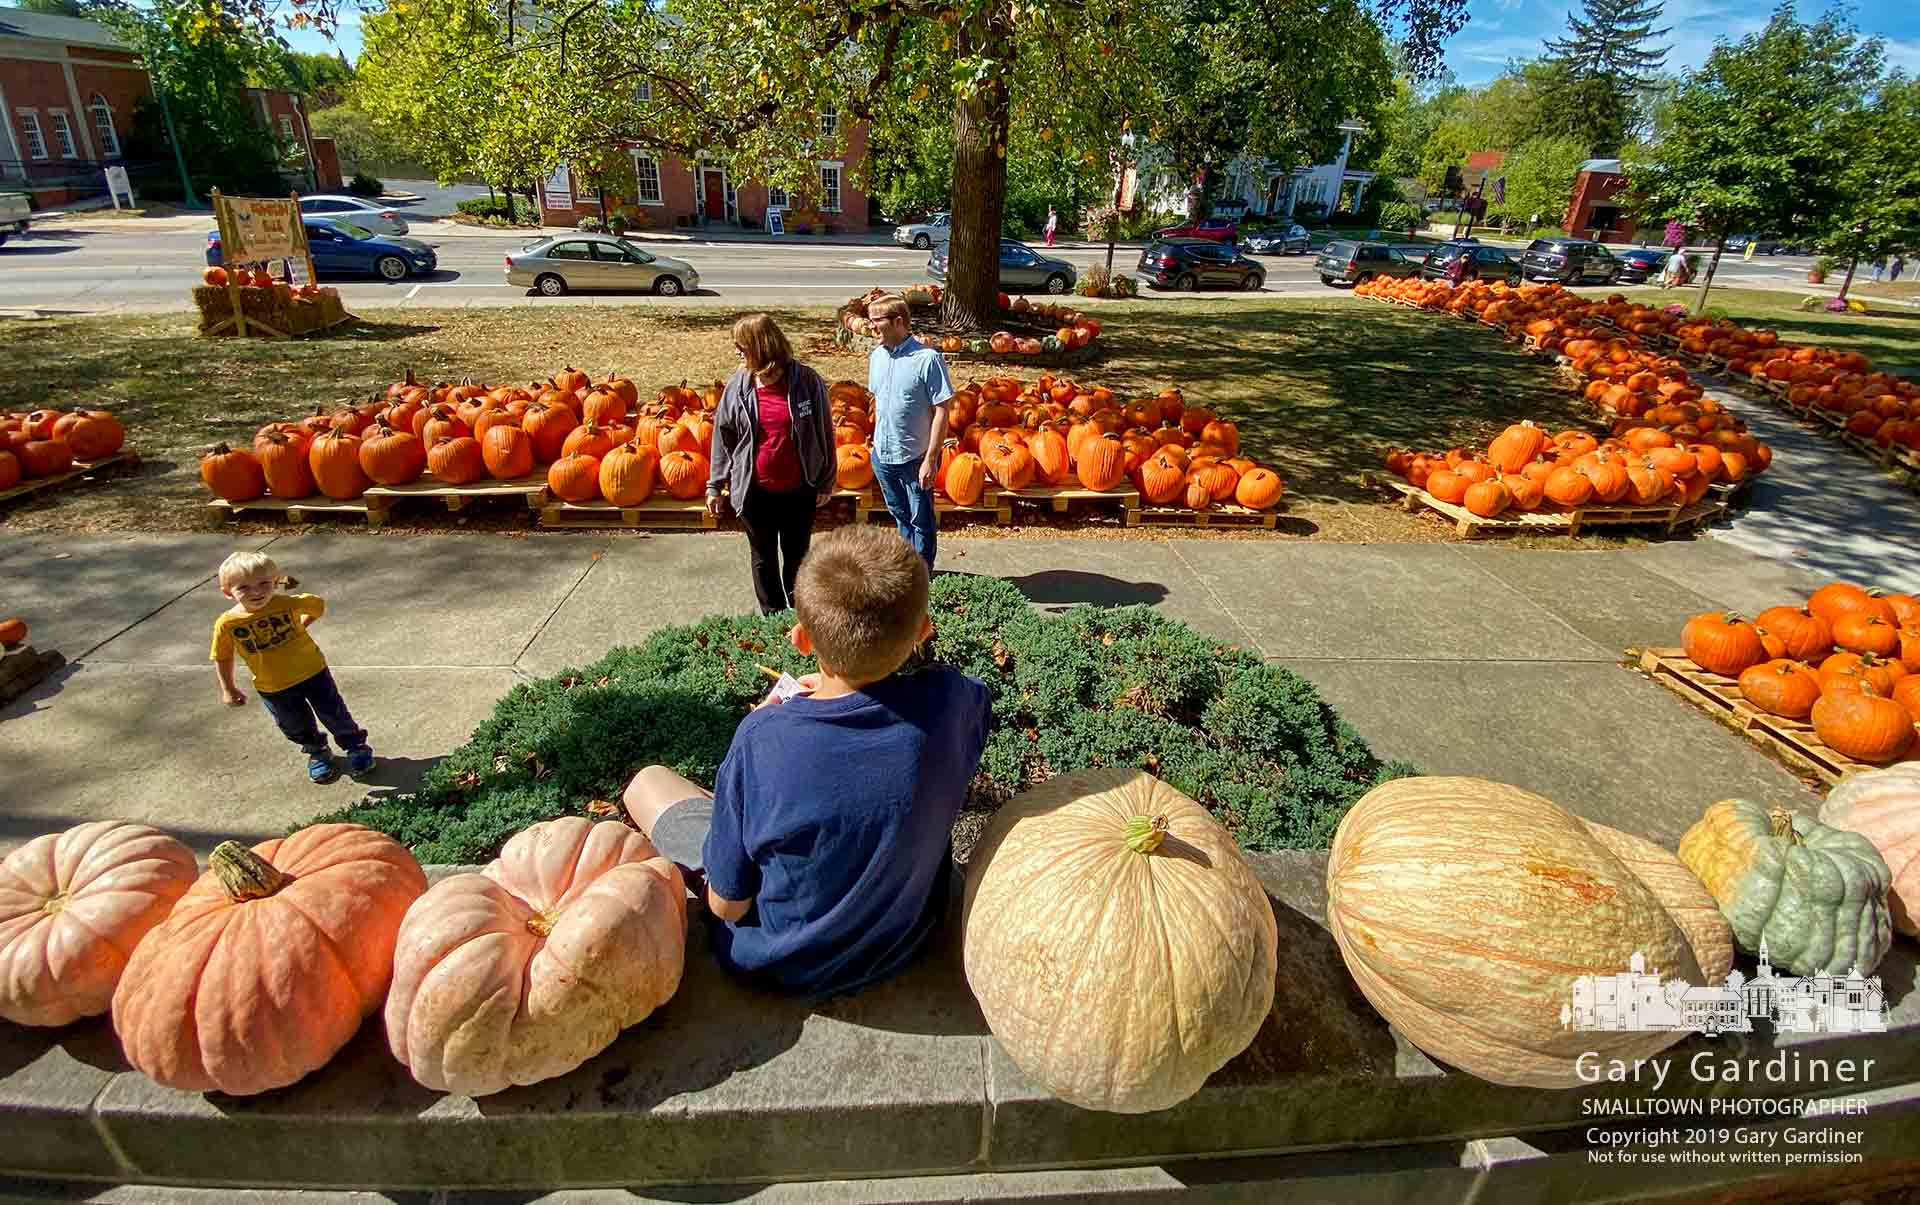 A family looks over the large selection of pumpkins at Westerville Troop 560's annual sale displayed in front of Masonic Hall on South State Street. My Final Photo for Oct. 5, 2019.